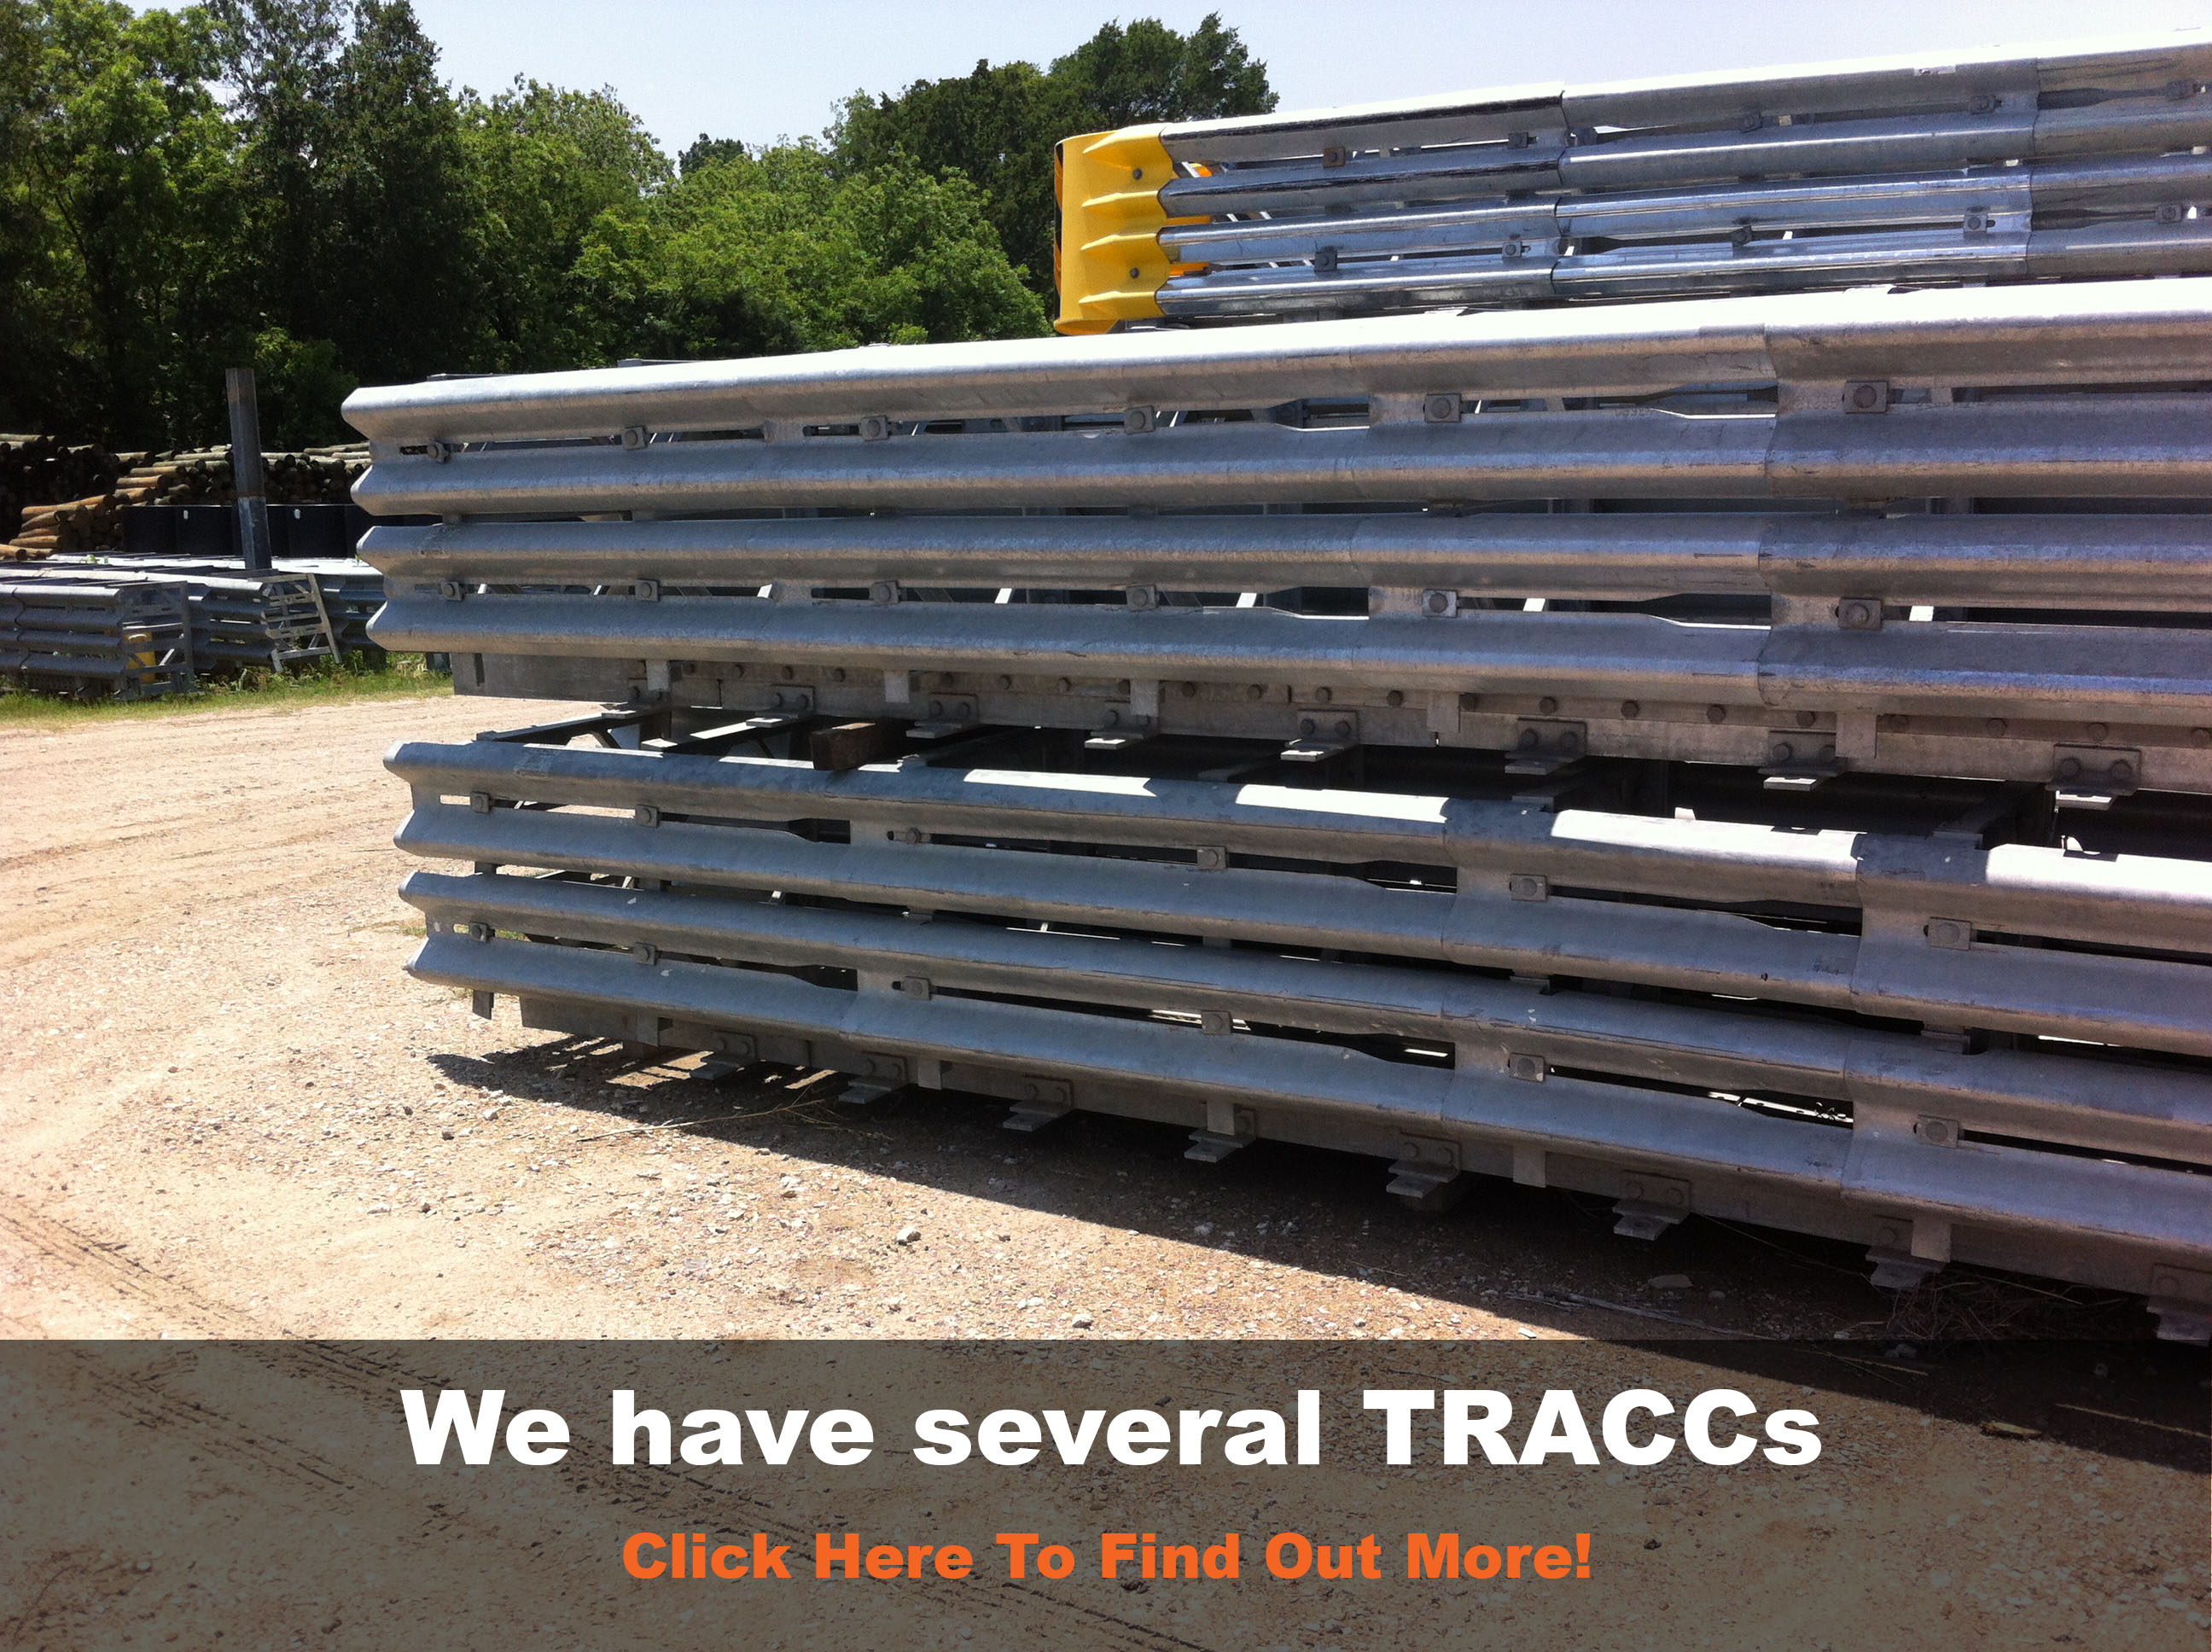 WHERE TO BUY TRACC UNITS